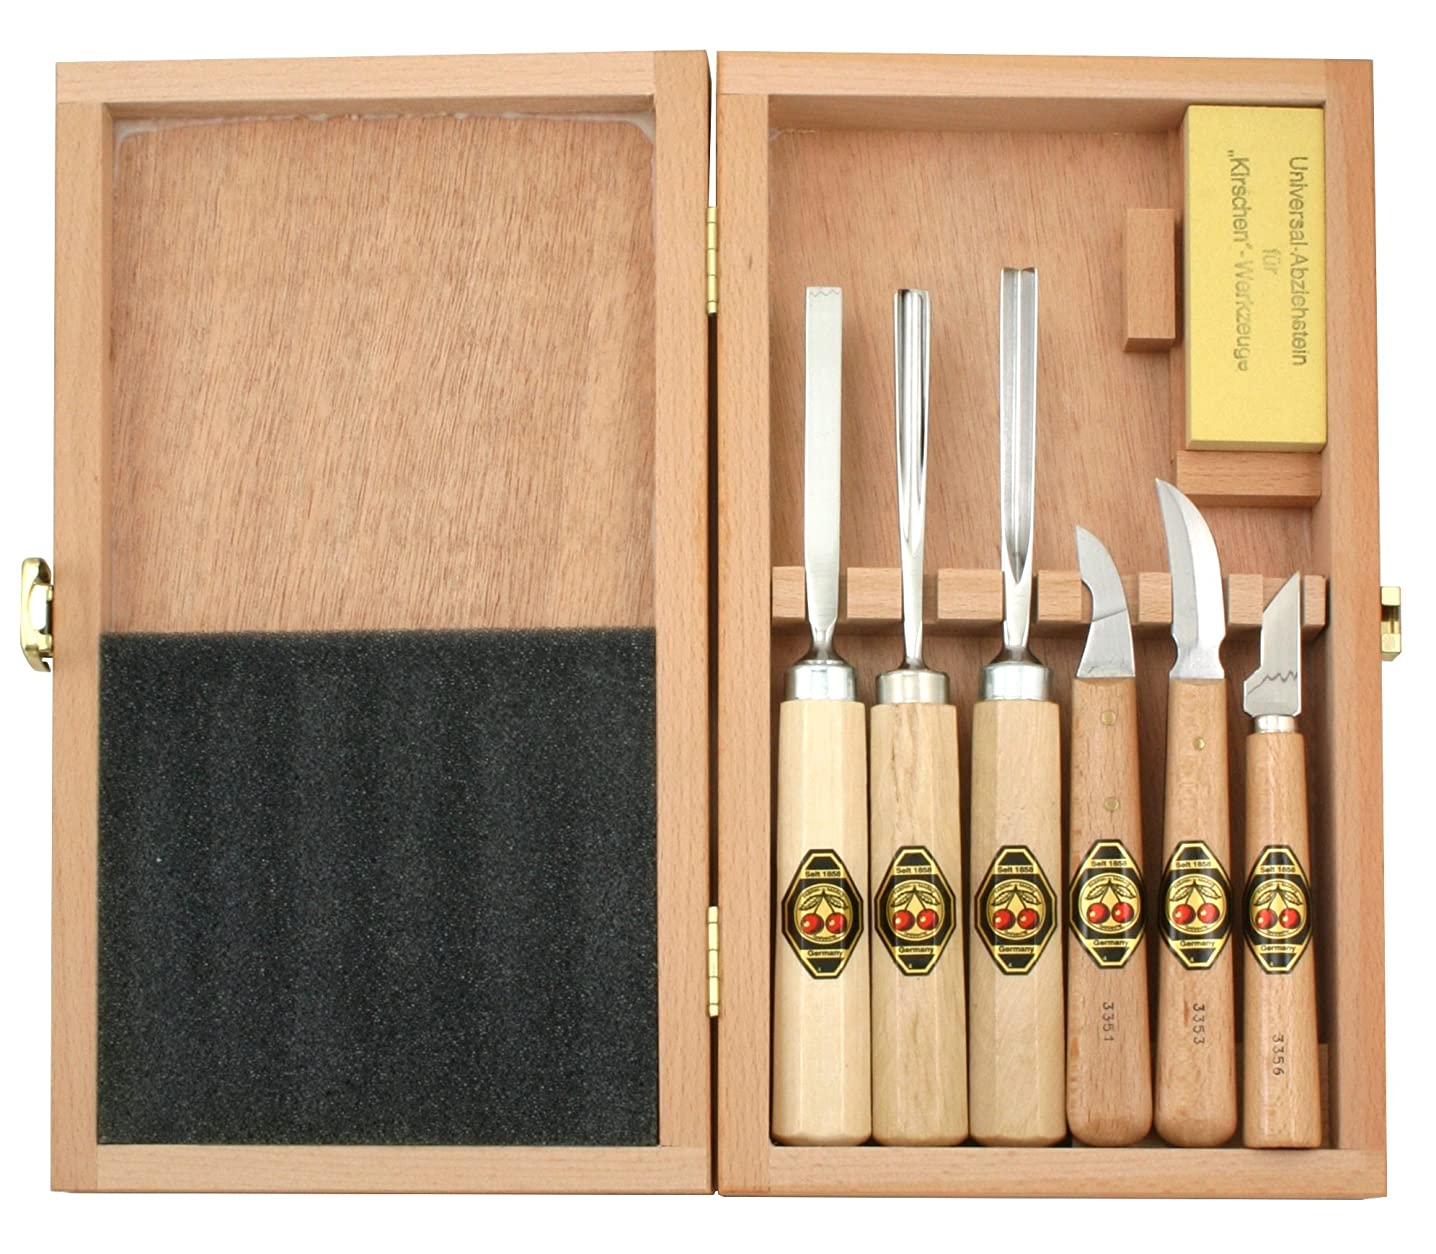 Two Cherries 515-3437 7-Piece Wood Carving Set in Wood Box